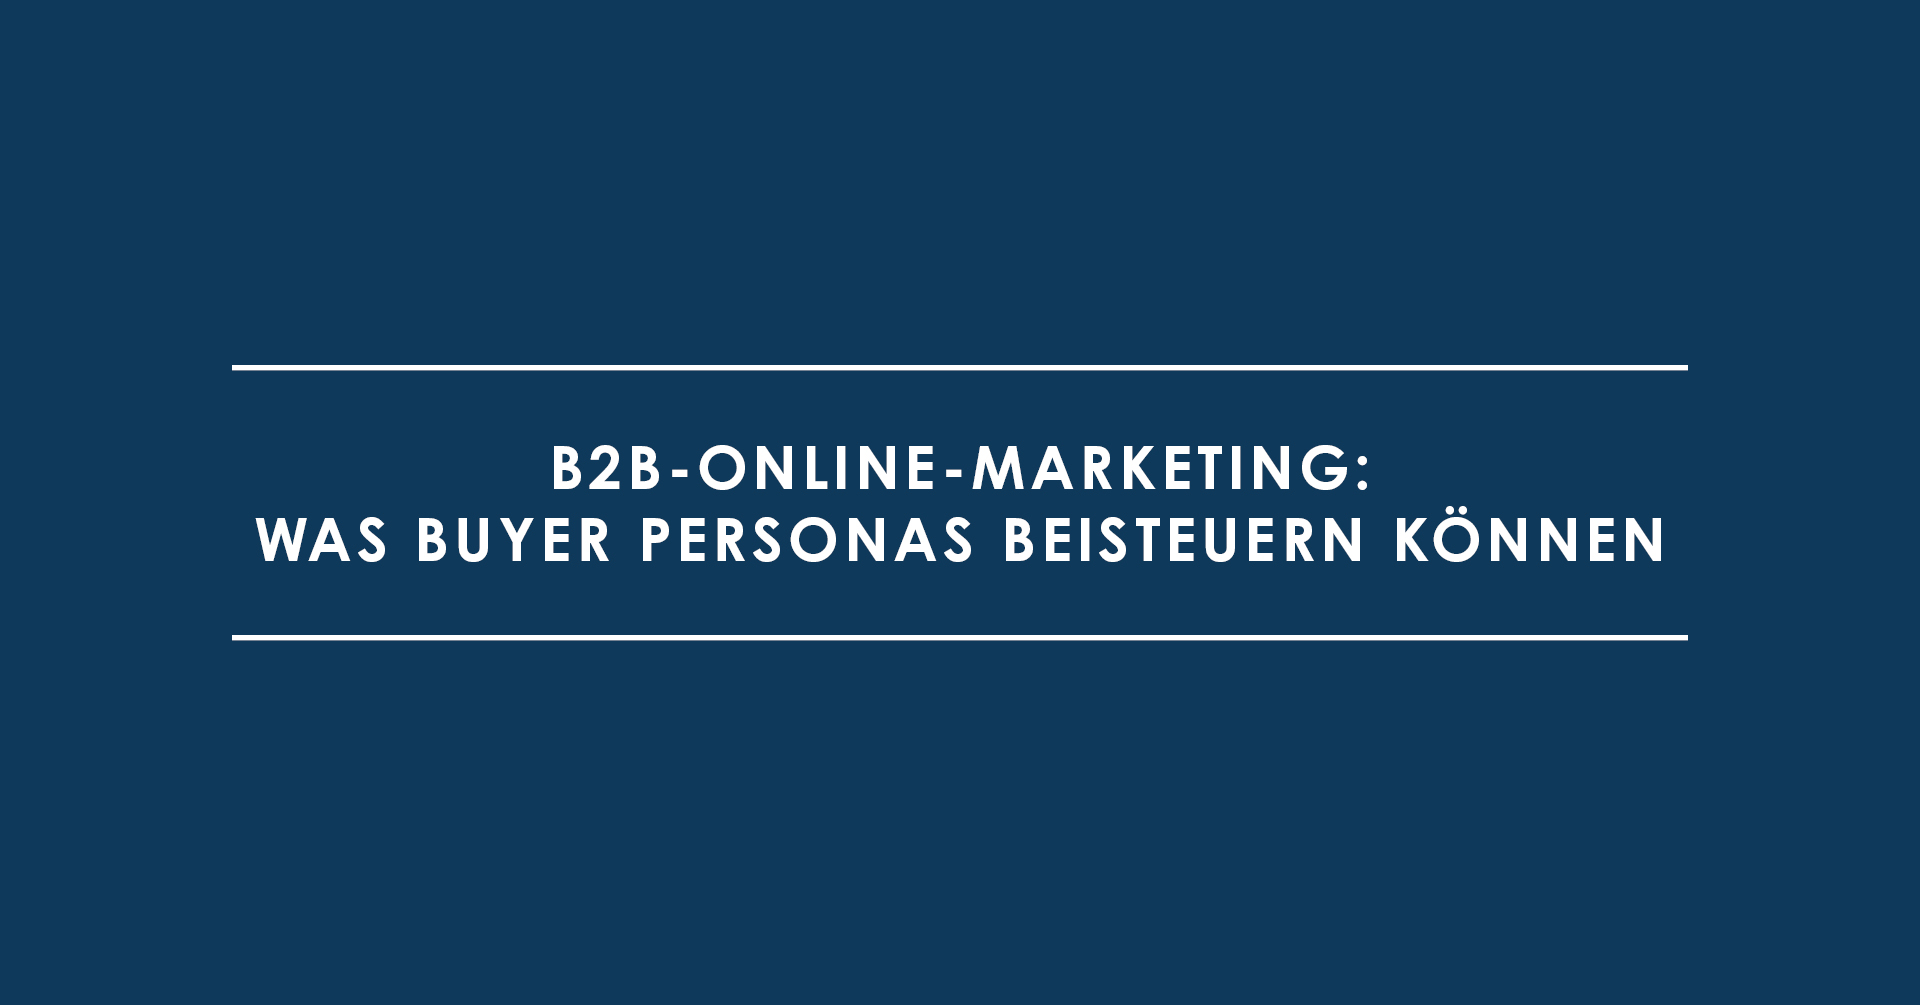 B2B-Online-Marketing: Was Buyer Personas beisteuern können